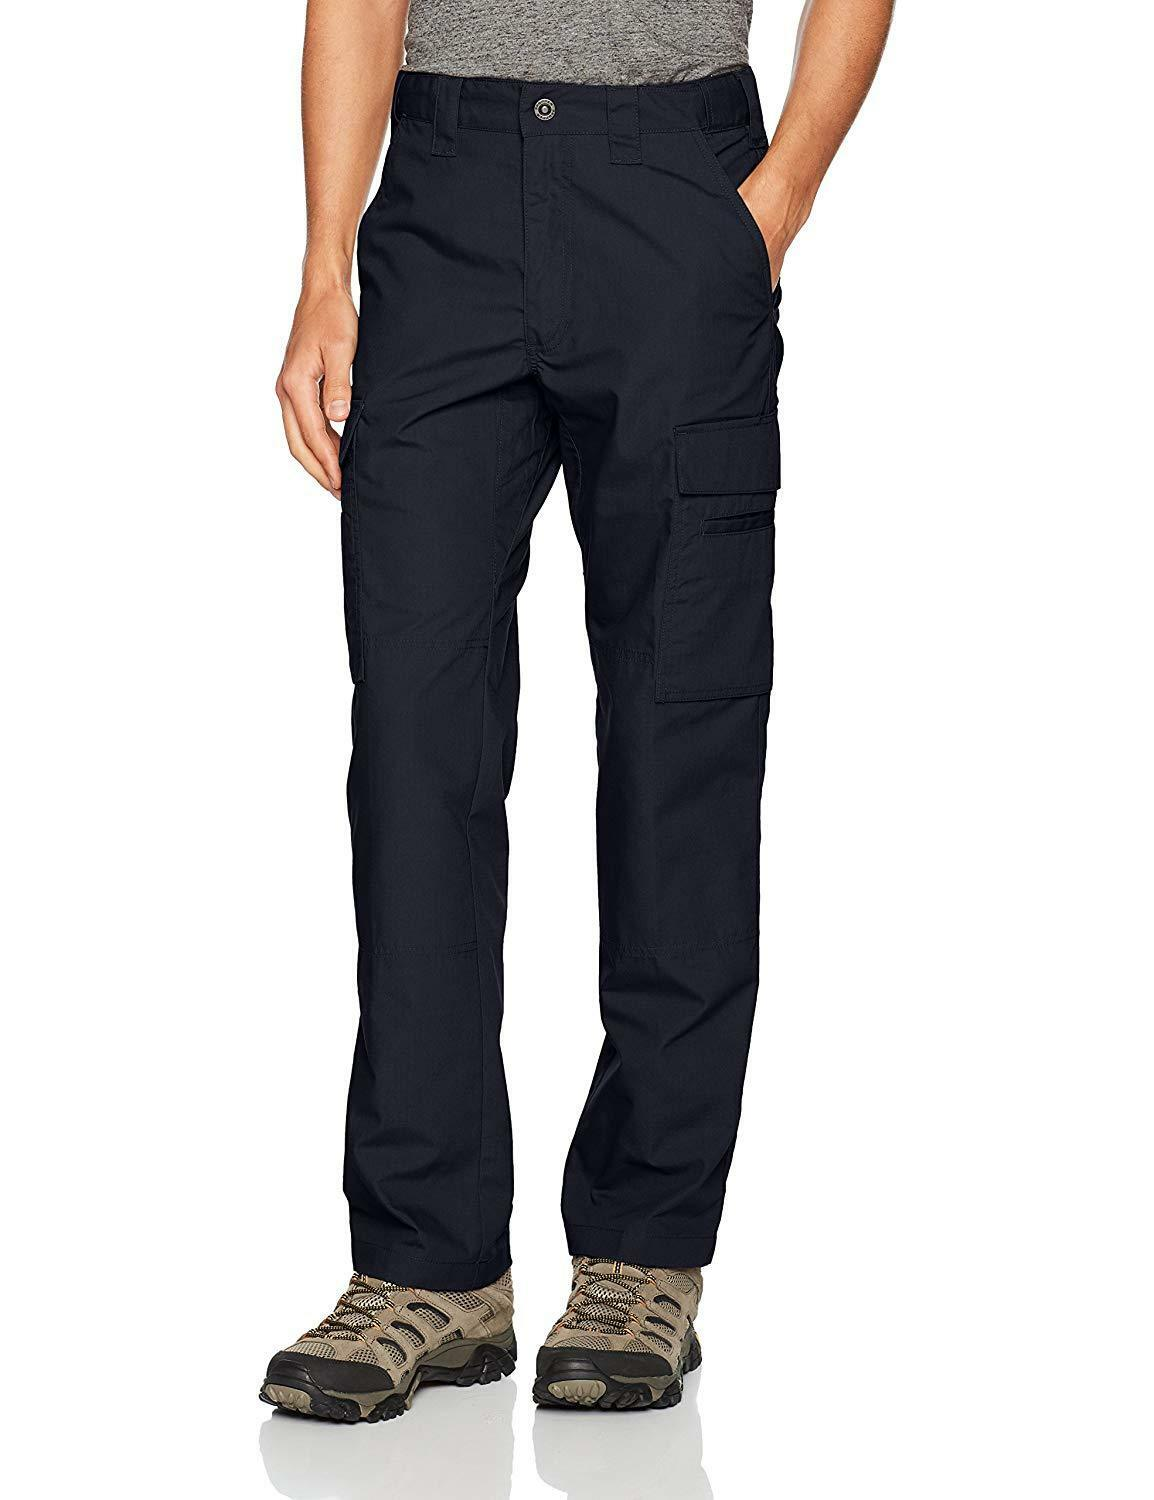 Propper Men's Revtac Pants, Lapd Navy, Size 36 x 32